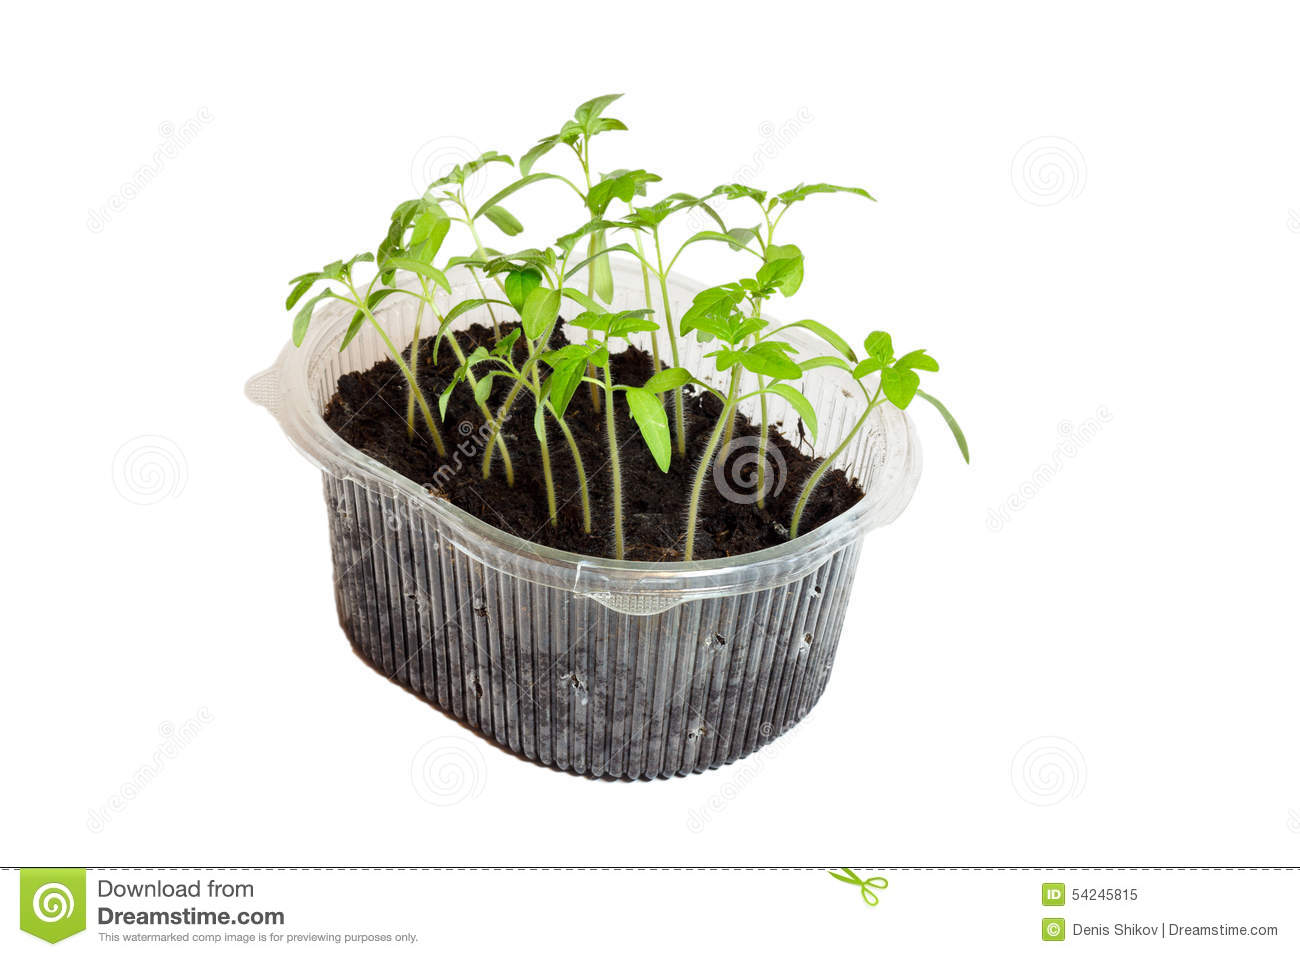 Seedlings of tomatoes in the box.